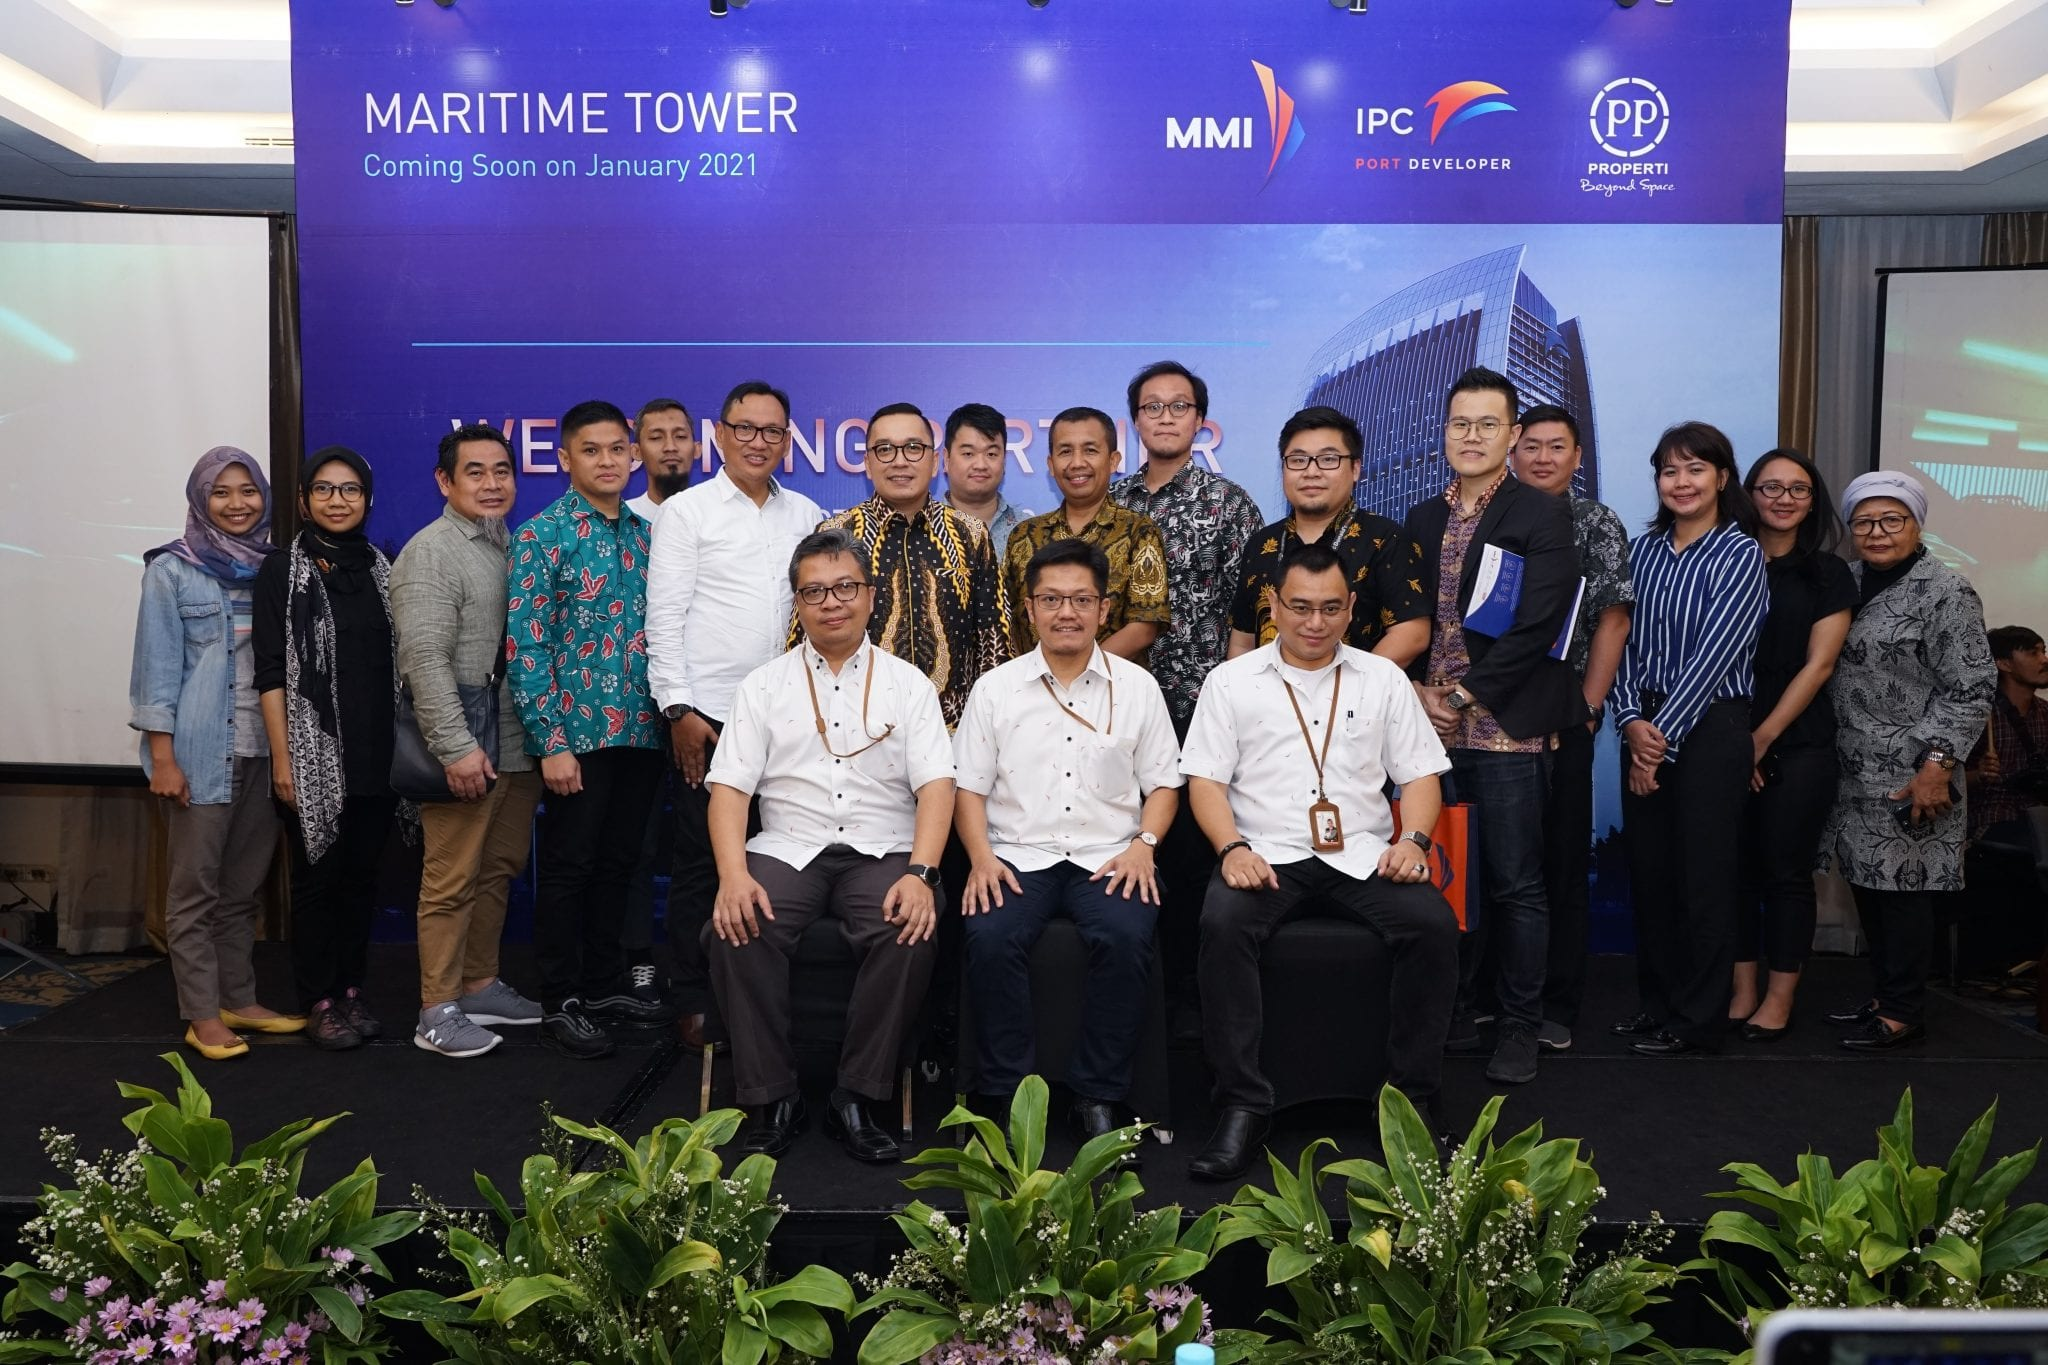 Welcoming Partner – Maritime Tower